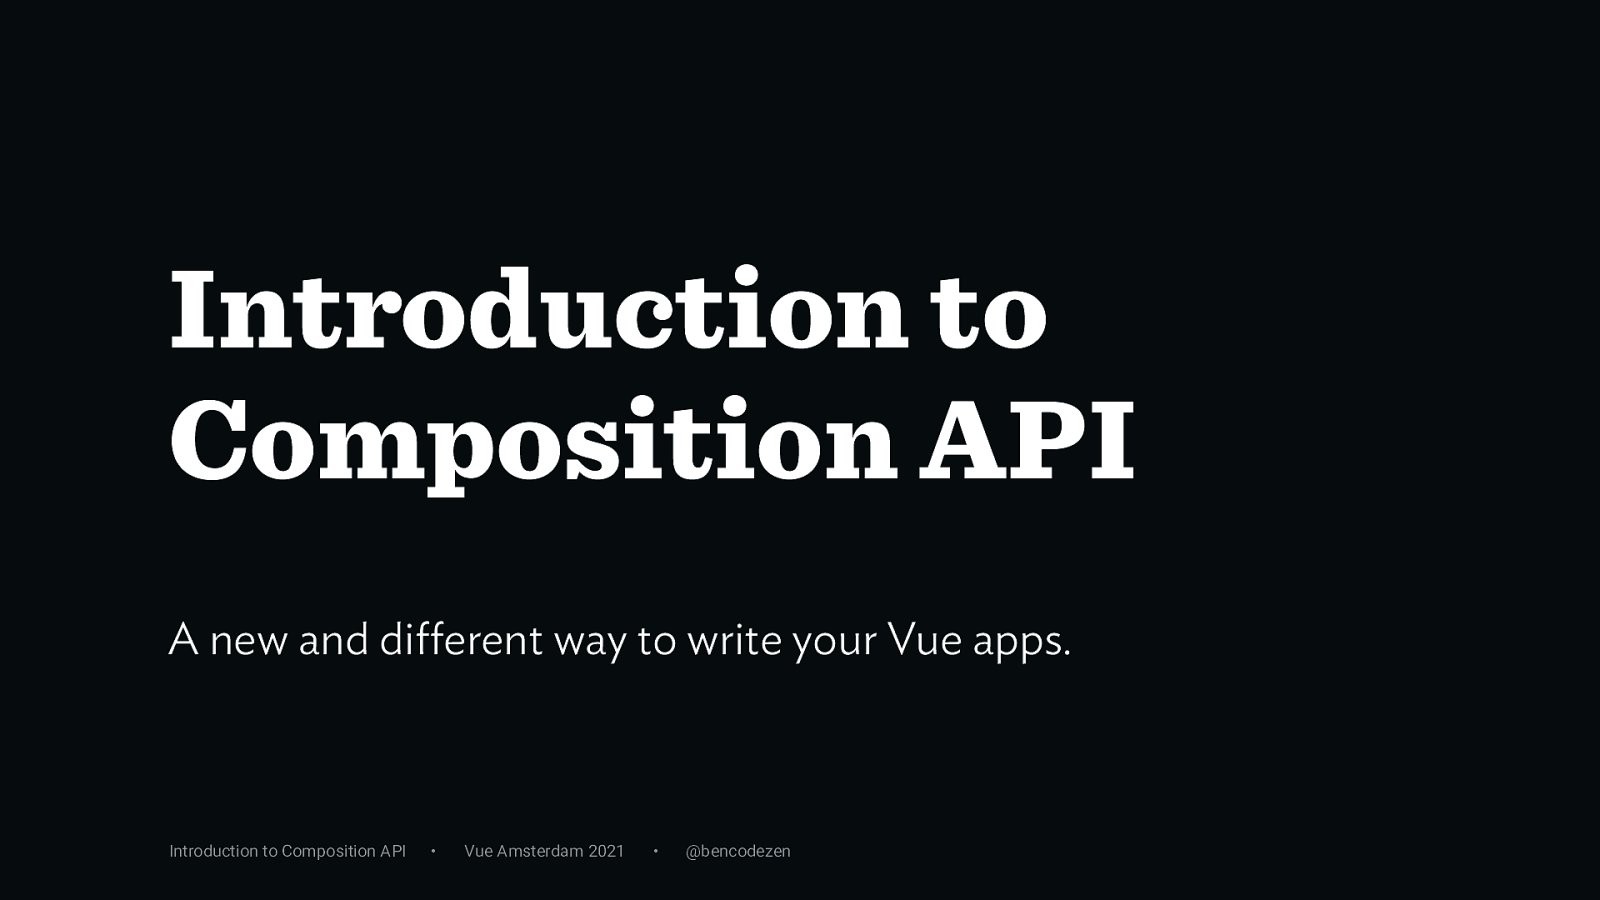 Introduction to Composition API by Ben Hong